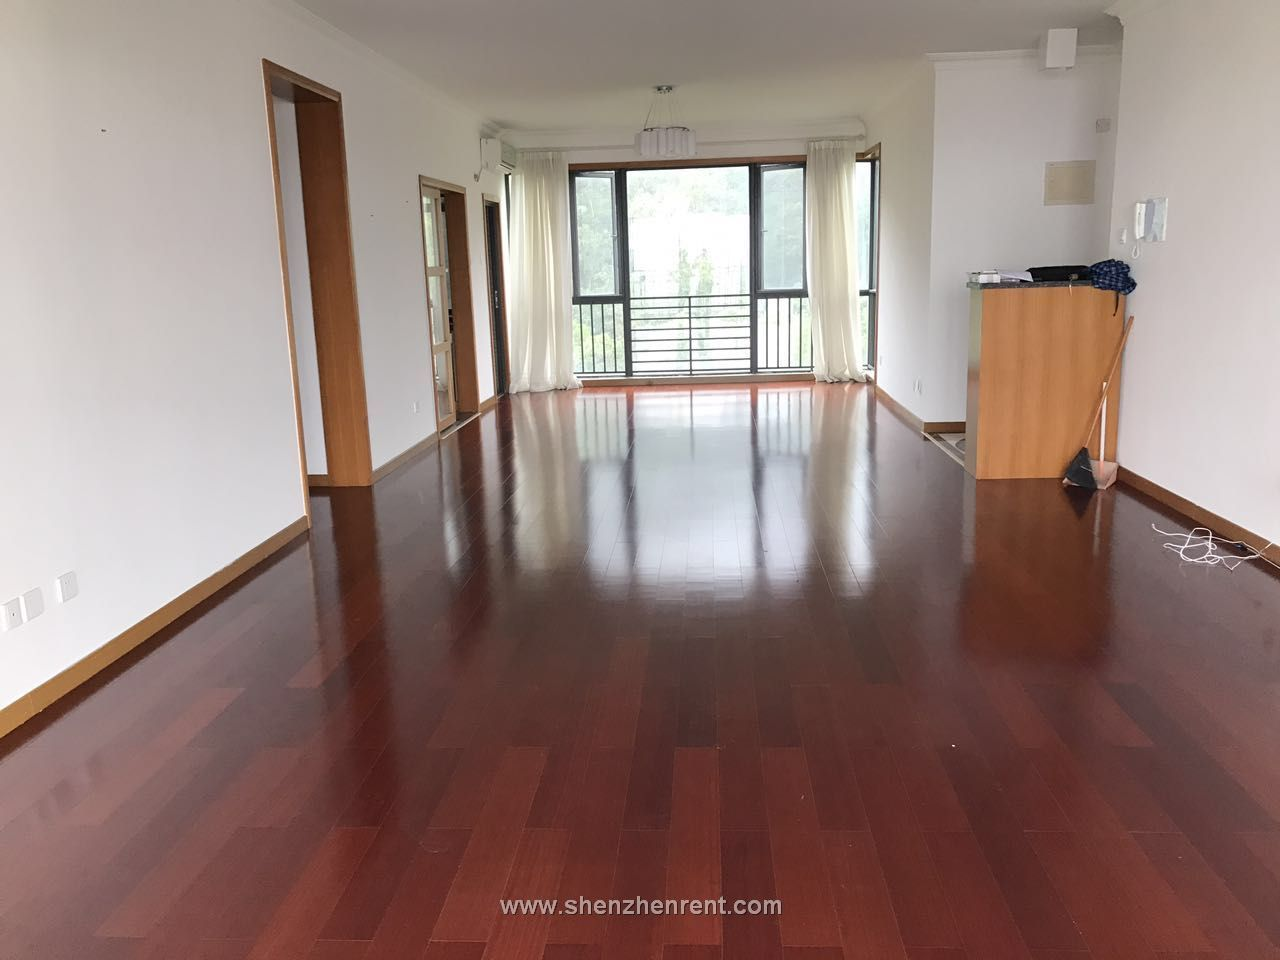 Empty 4 bedrooms apartment  in shekou ming xi gu  for rent